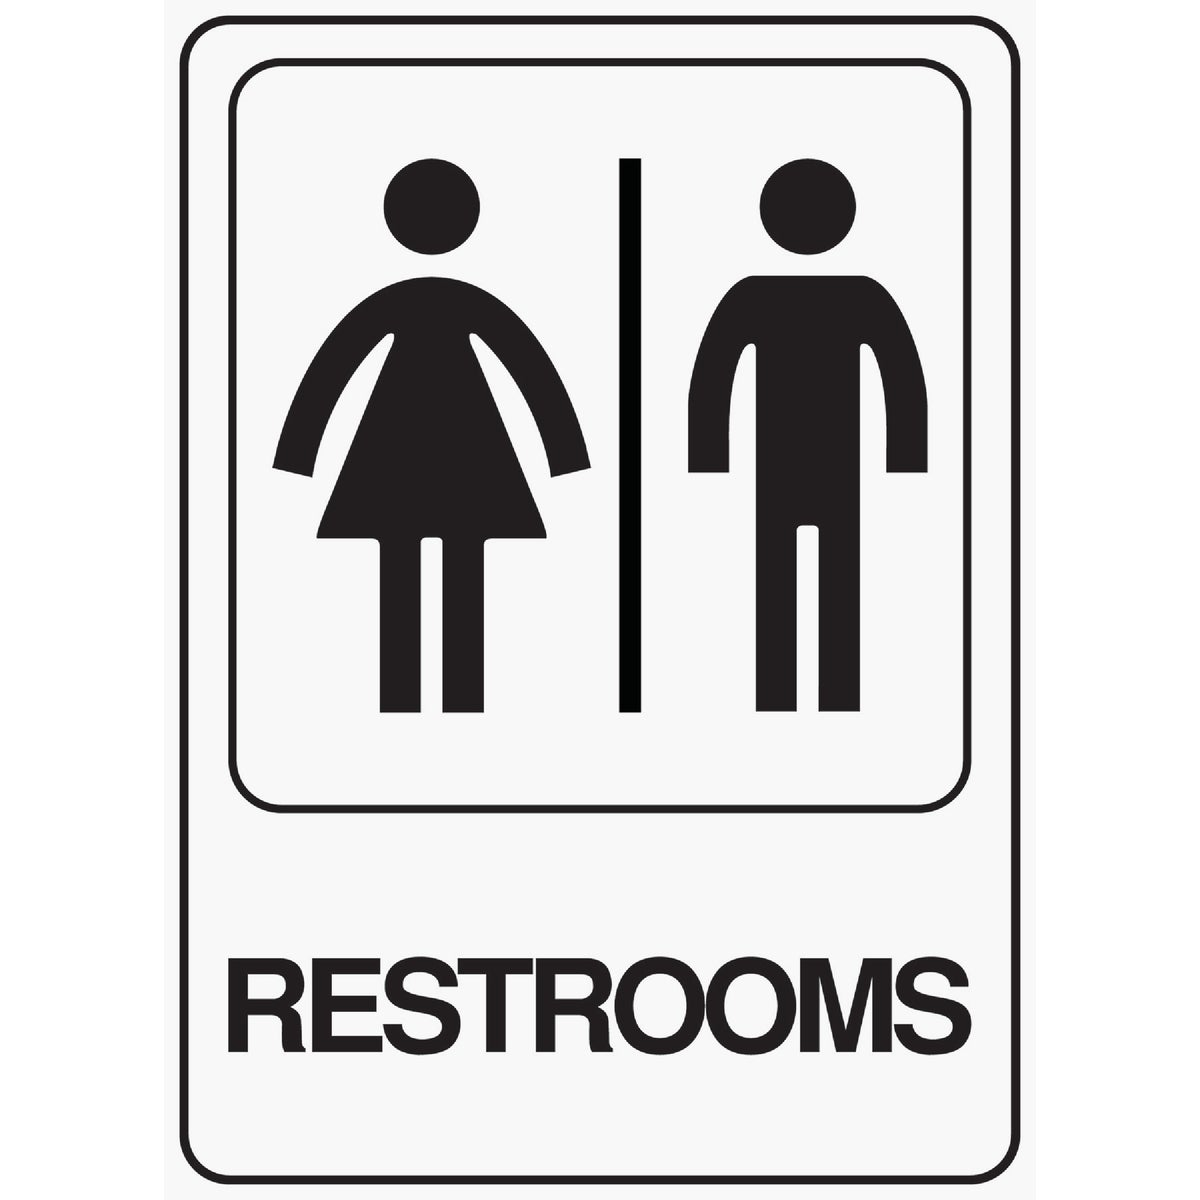 5X7 RESTROOMS SIGN